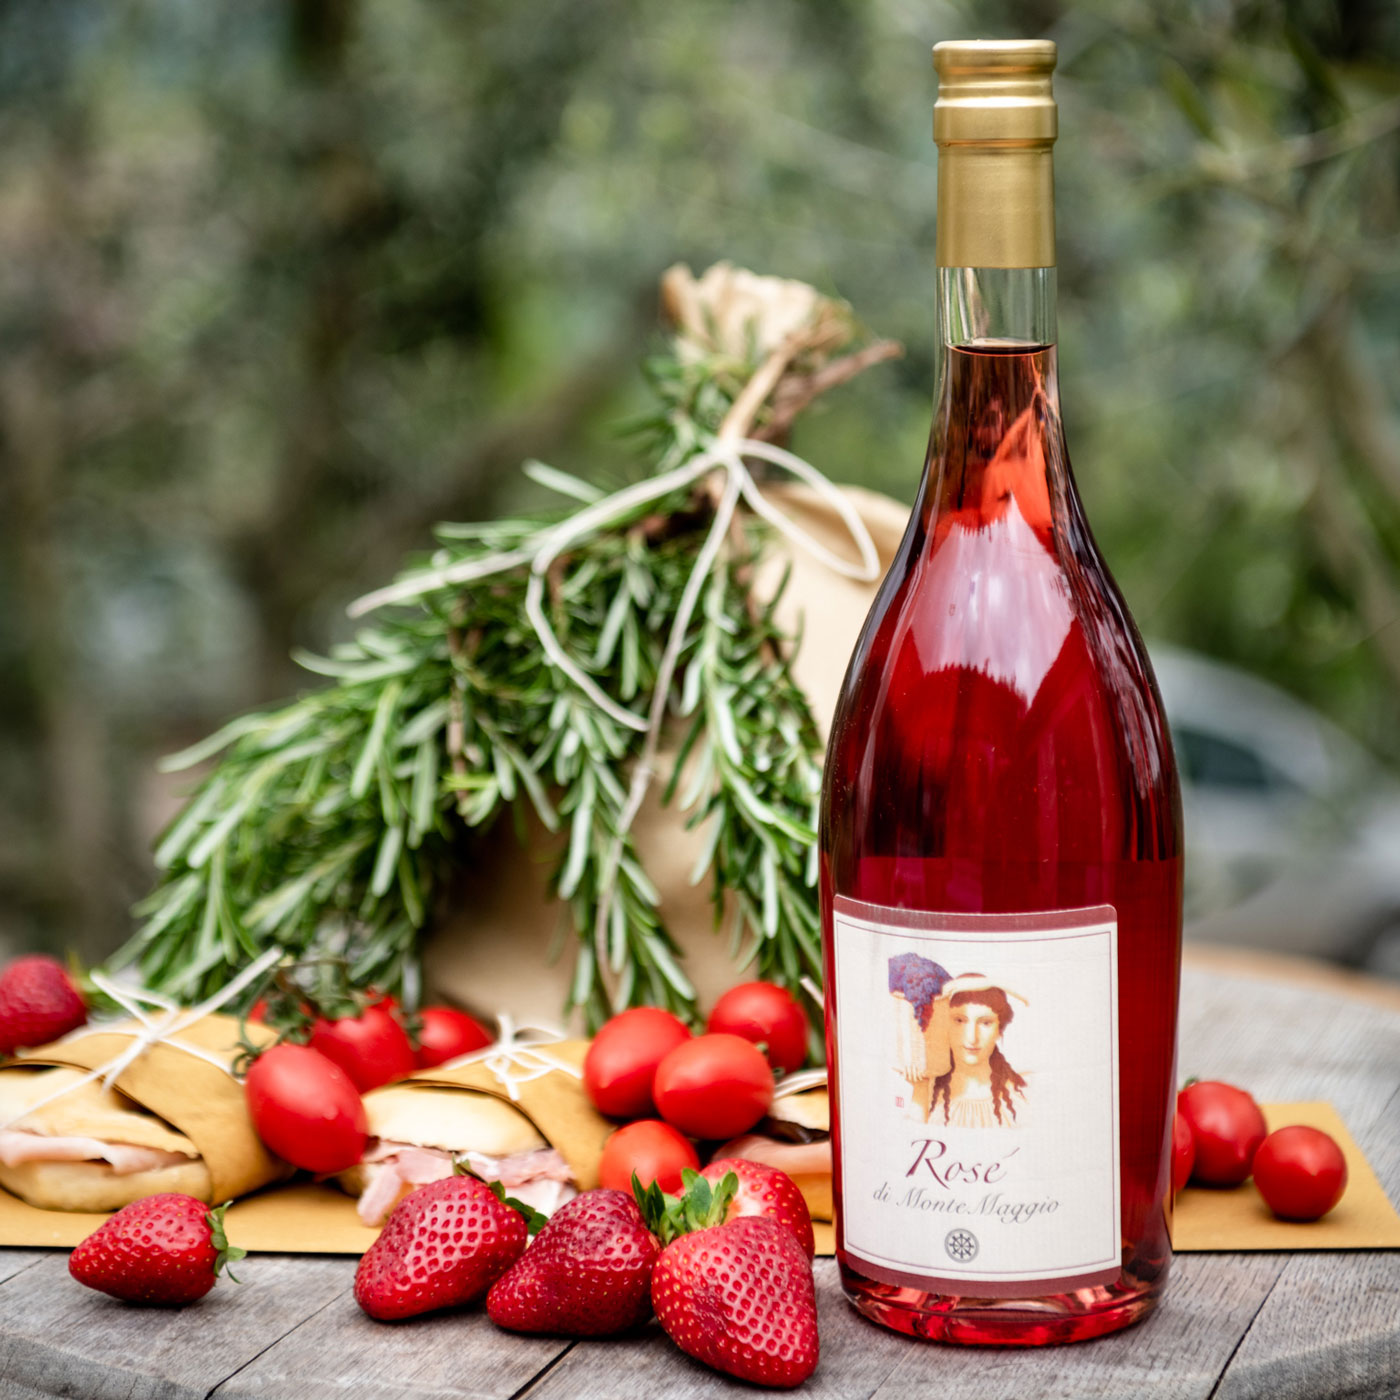 Buy Rosé di Montemaggio to complement your fish or other fried fatty dishes